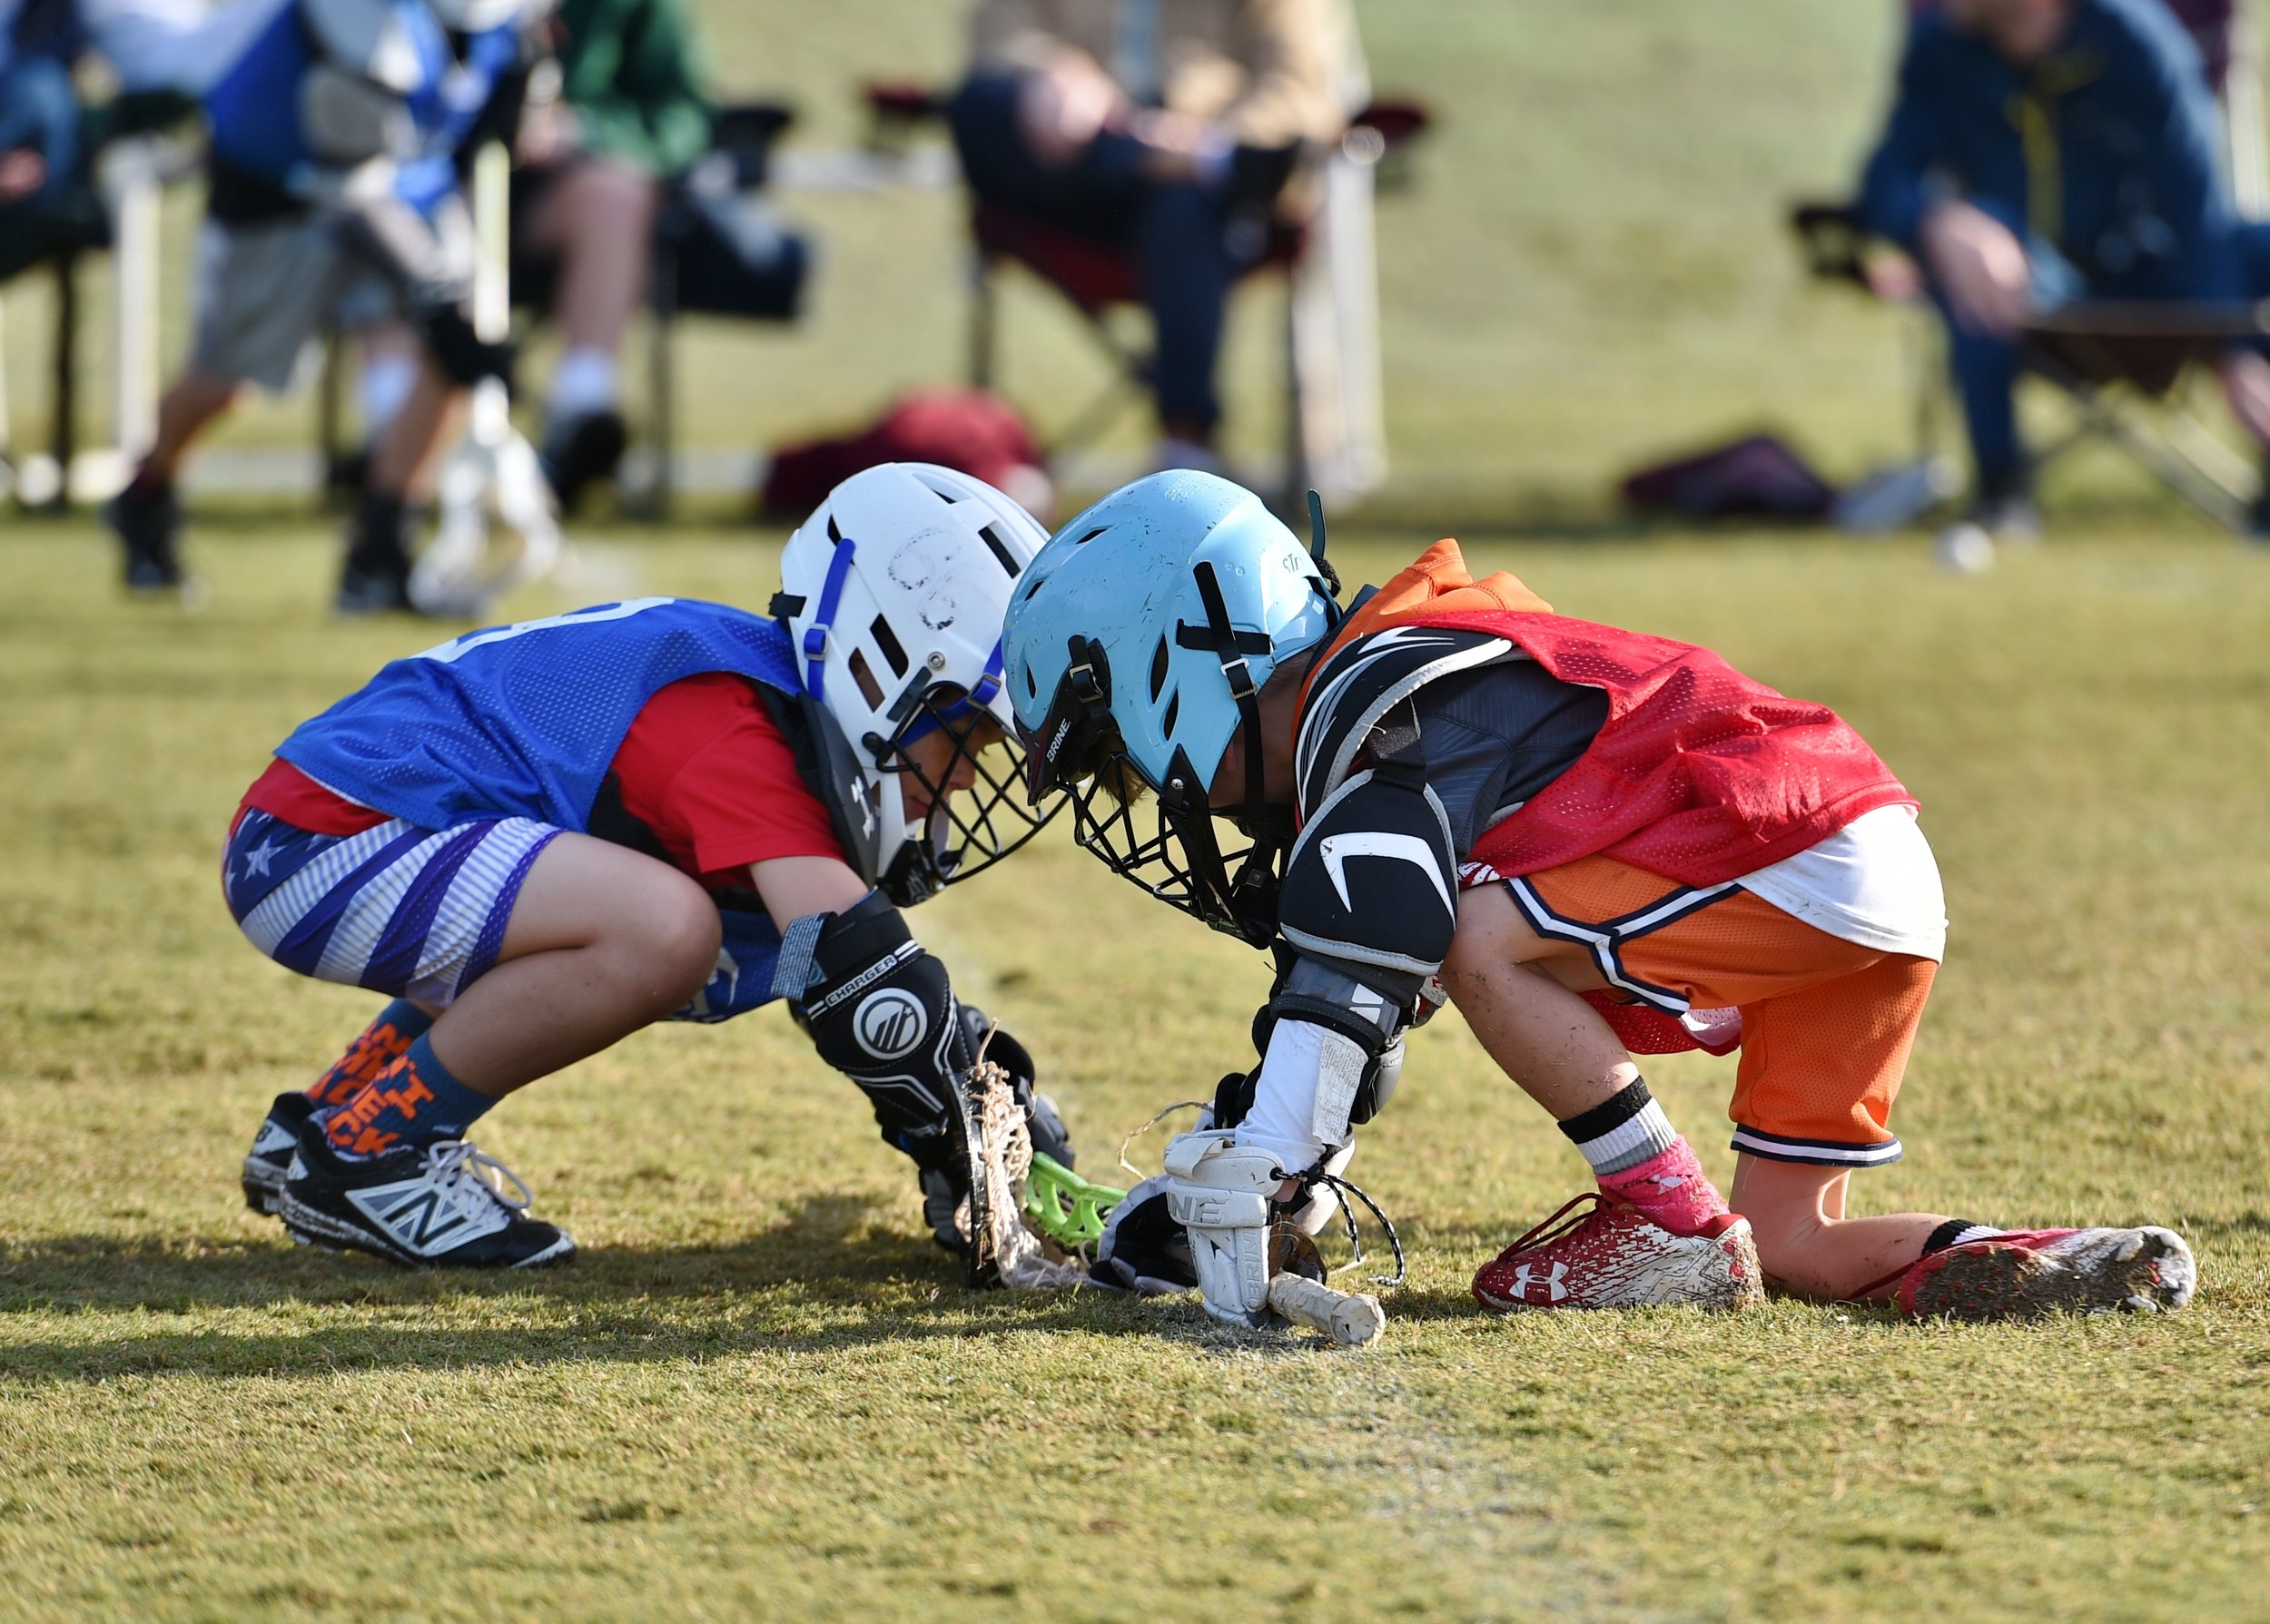 Two, K5-2nd grade players taking a face-off!